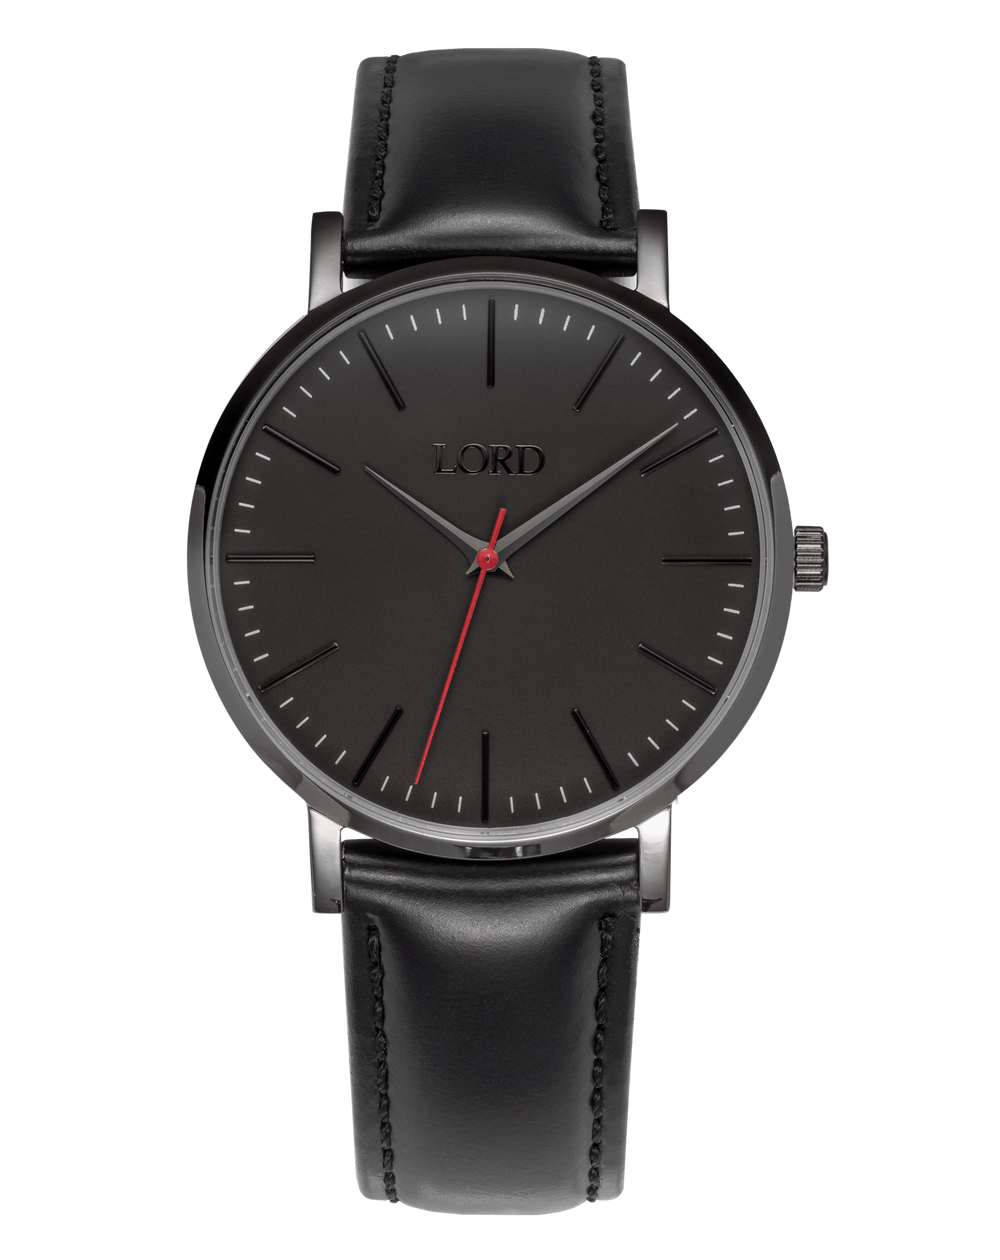 Midnight Black Watch | Men's Watches | Lord Timepieces